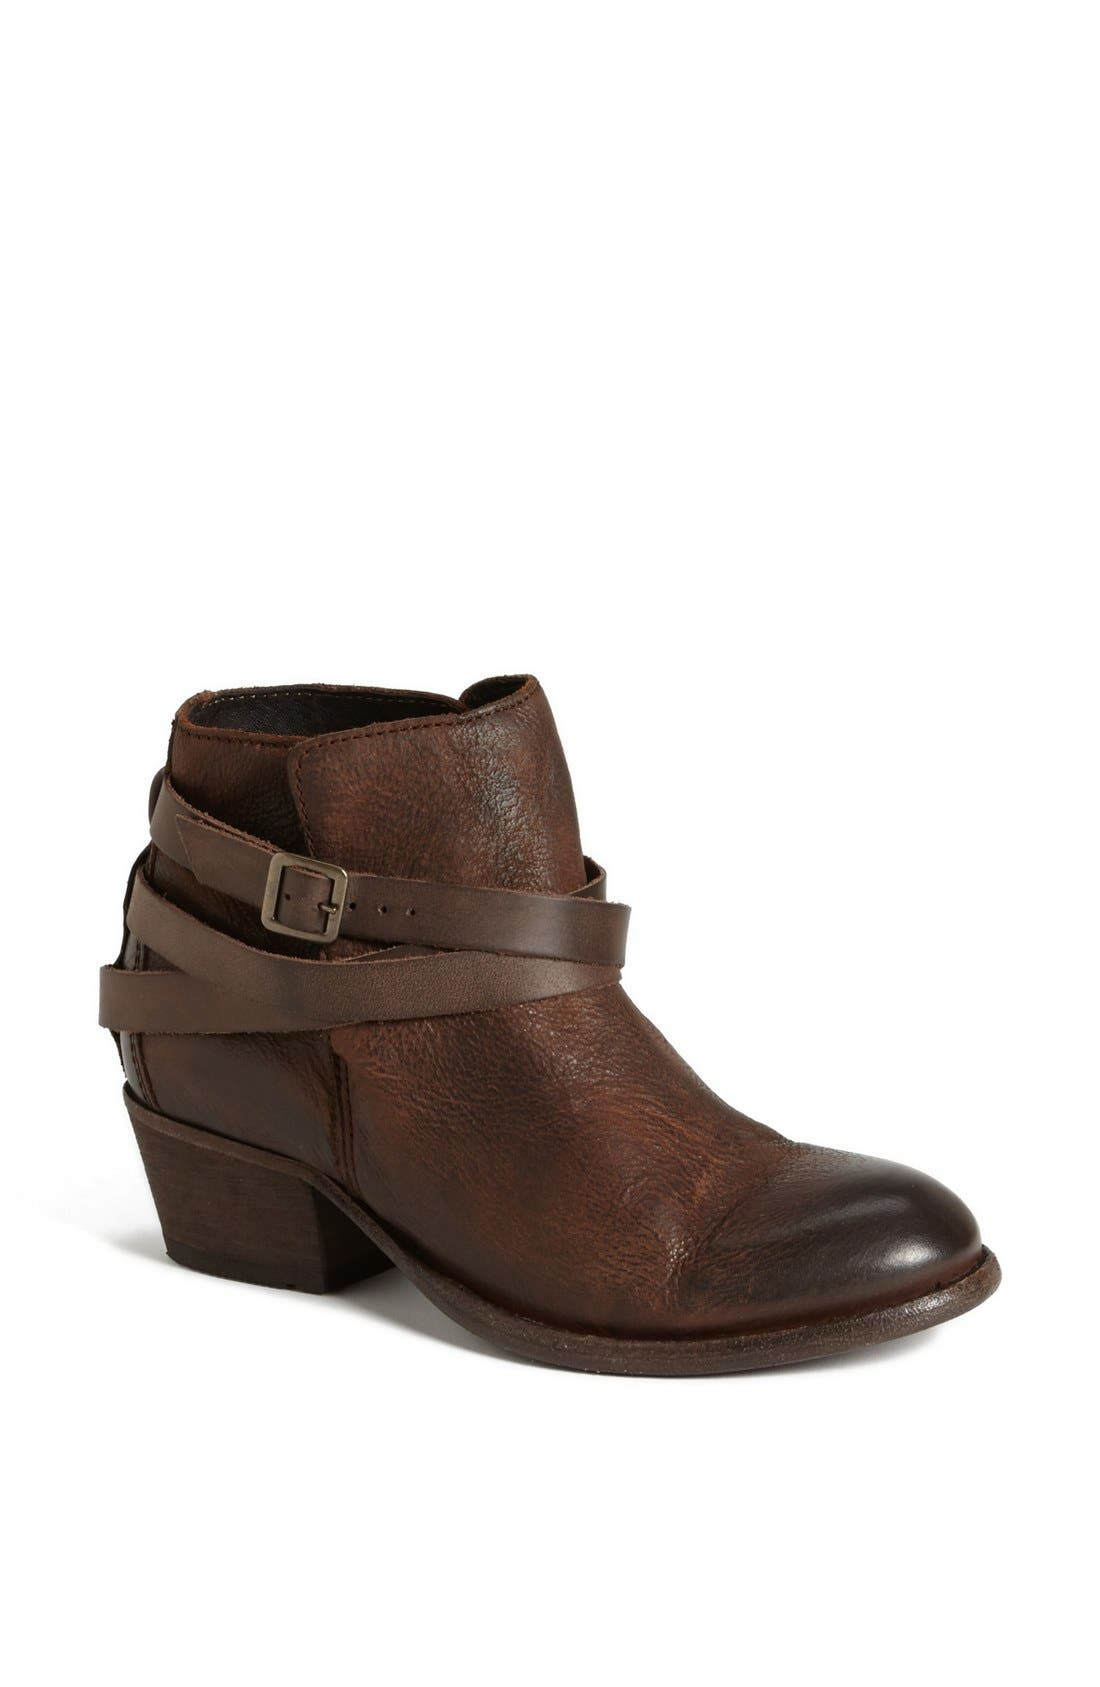 Main Image - H by Hudson 'Horrigan' Belt Wrapped Bootie